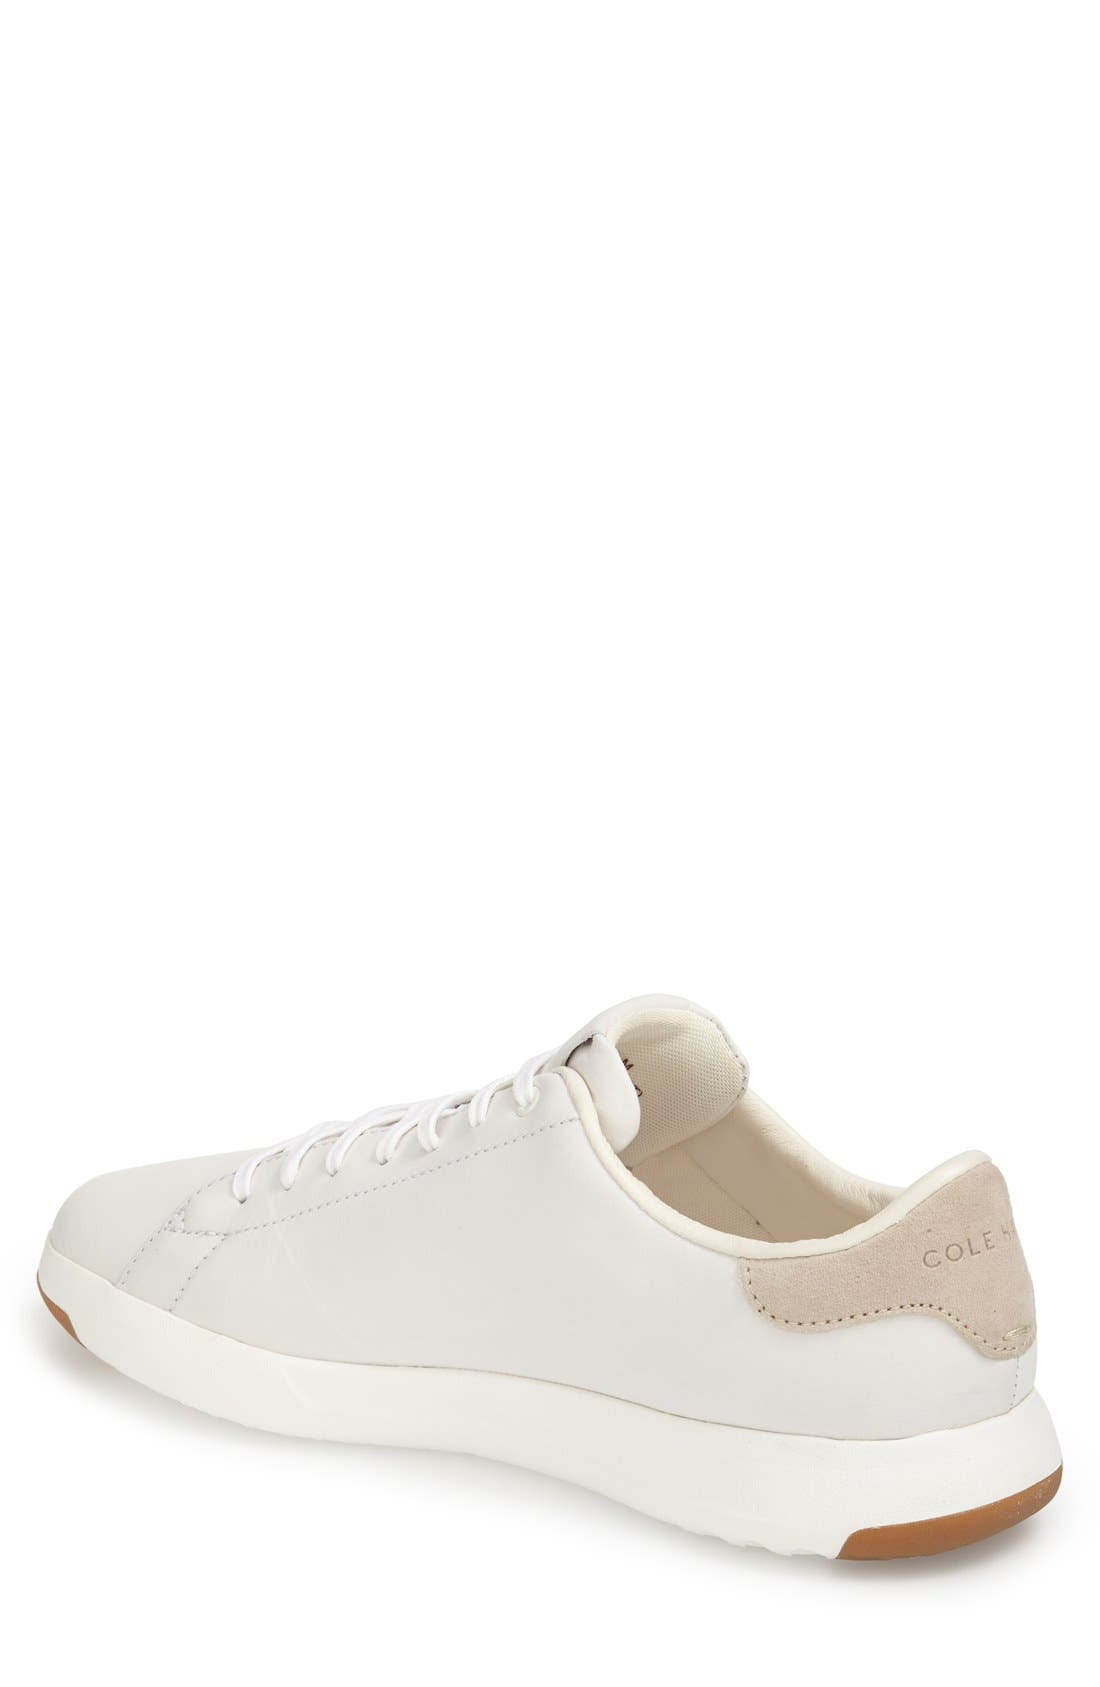 GrandPro Tennis Sneaker,                             Alternate thumbnail 8, color,                             WHITE